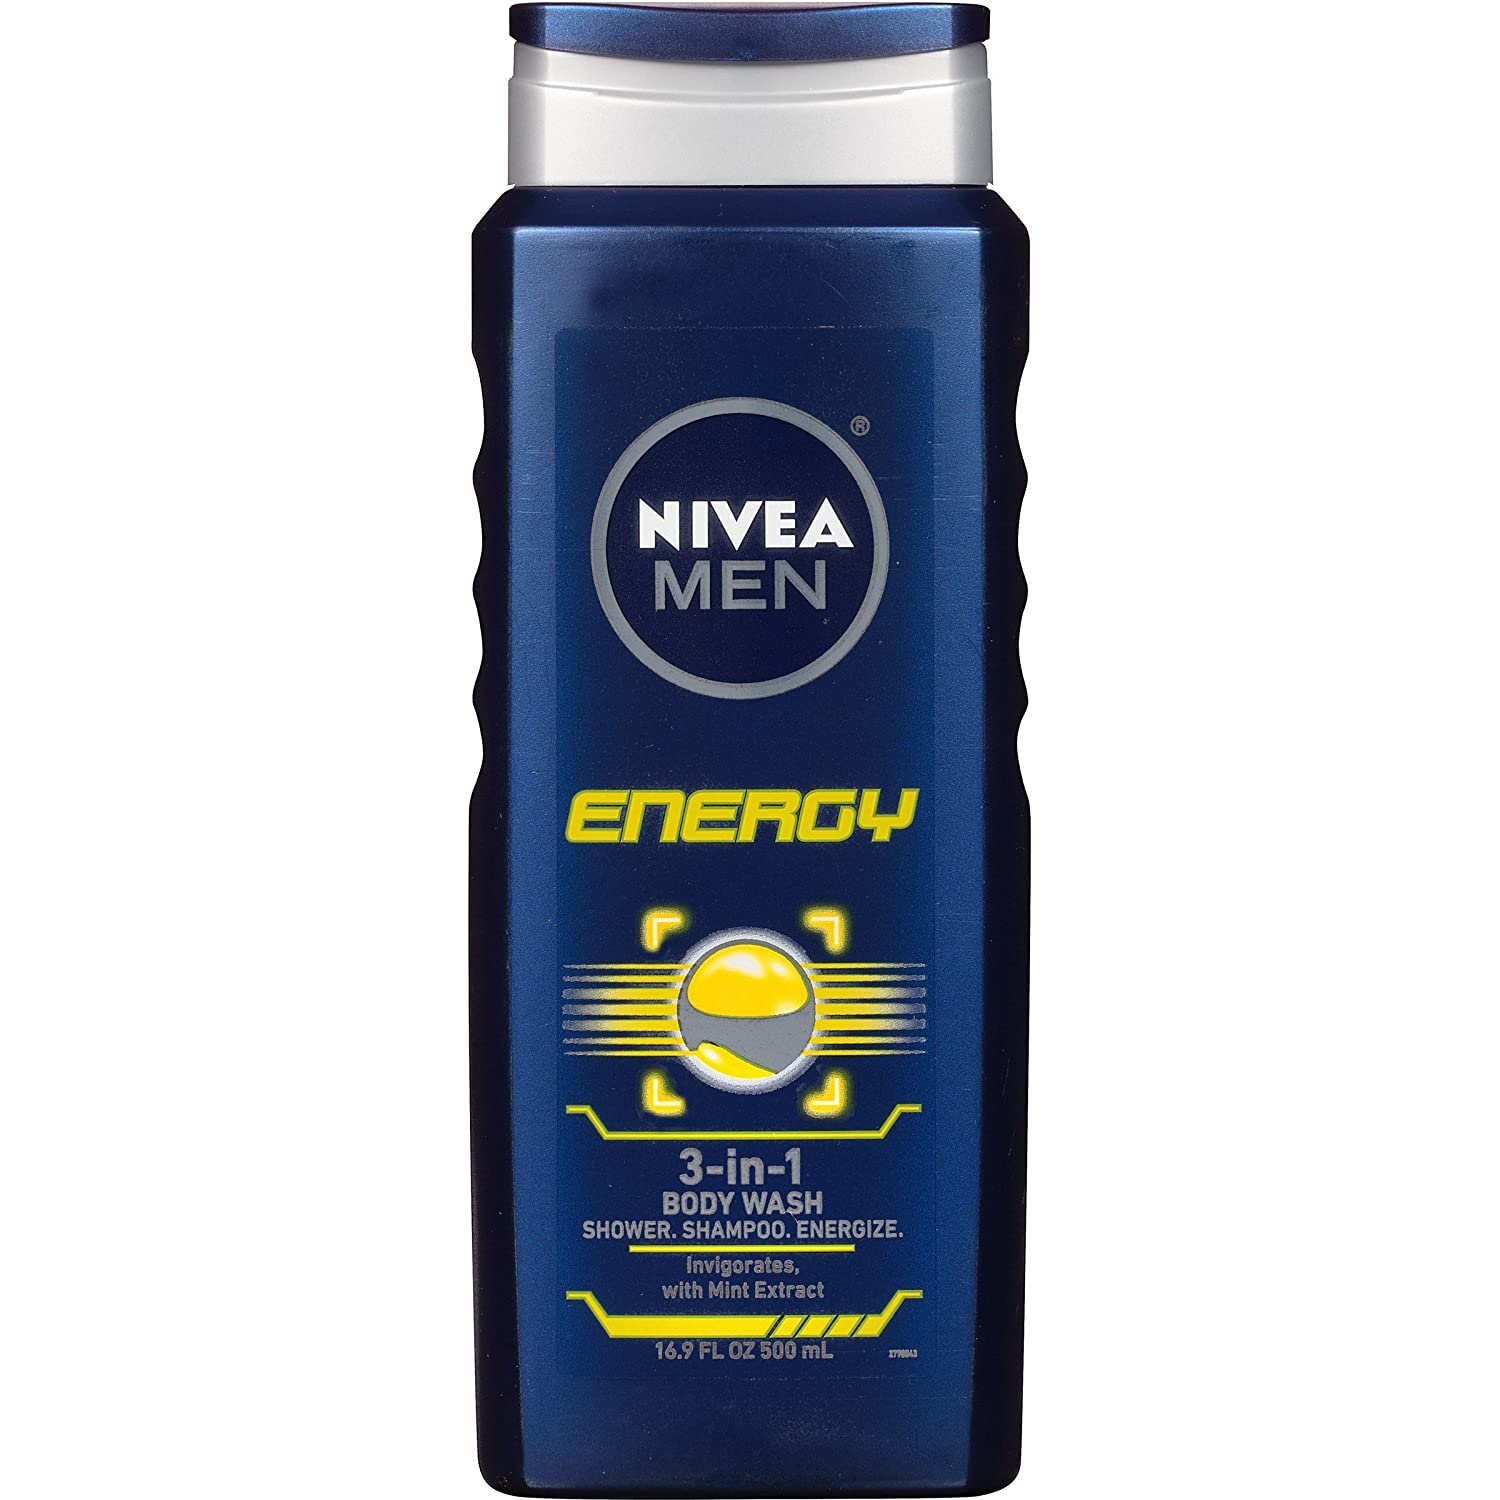 NIVEA Men Maximum Hydration 3 in 1 Body Wash 16.9 Fluid Ounce (Pack of 3) Nivea for Men TRTAZ11A